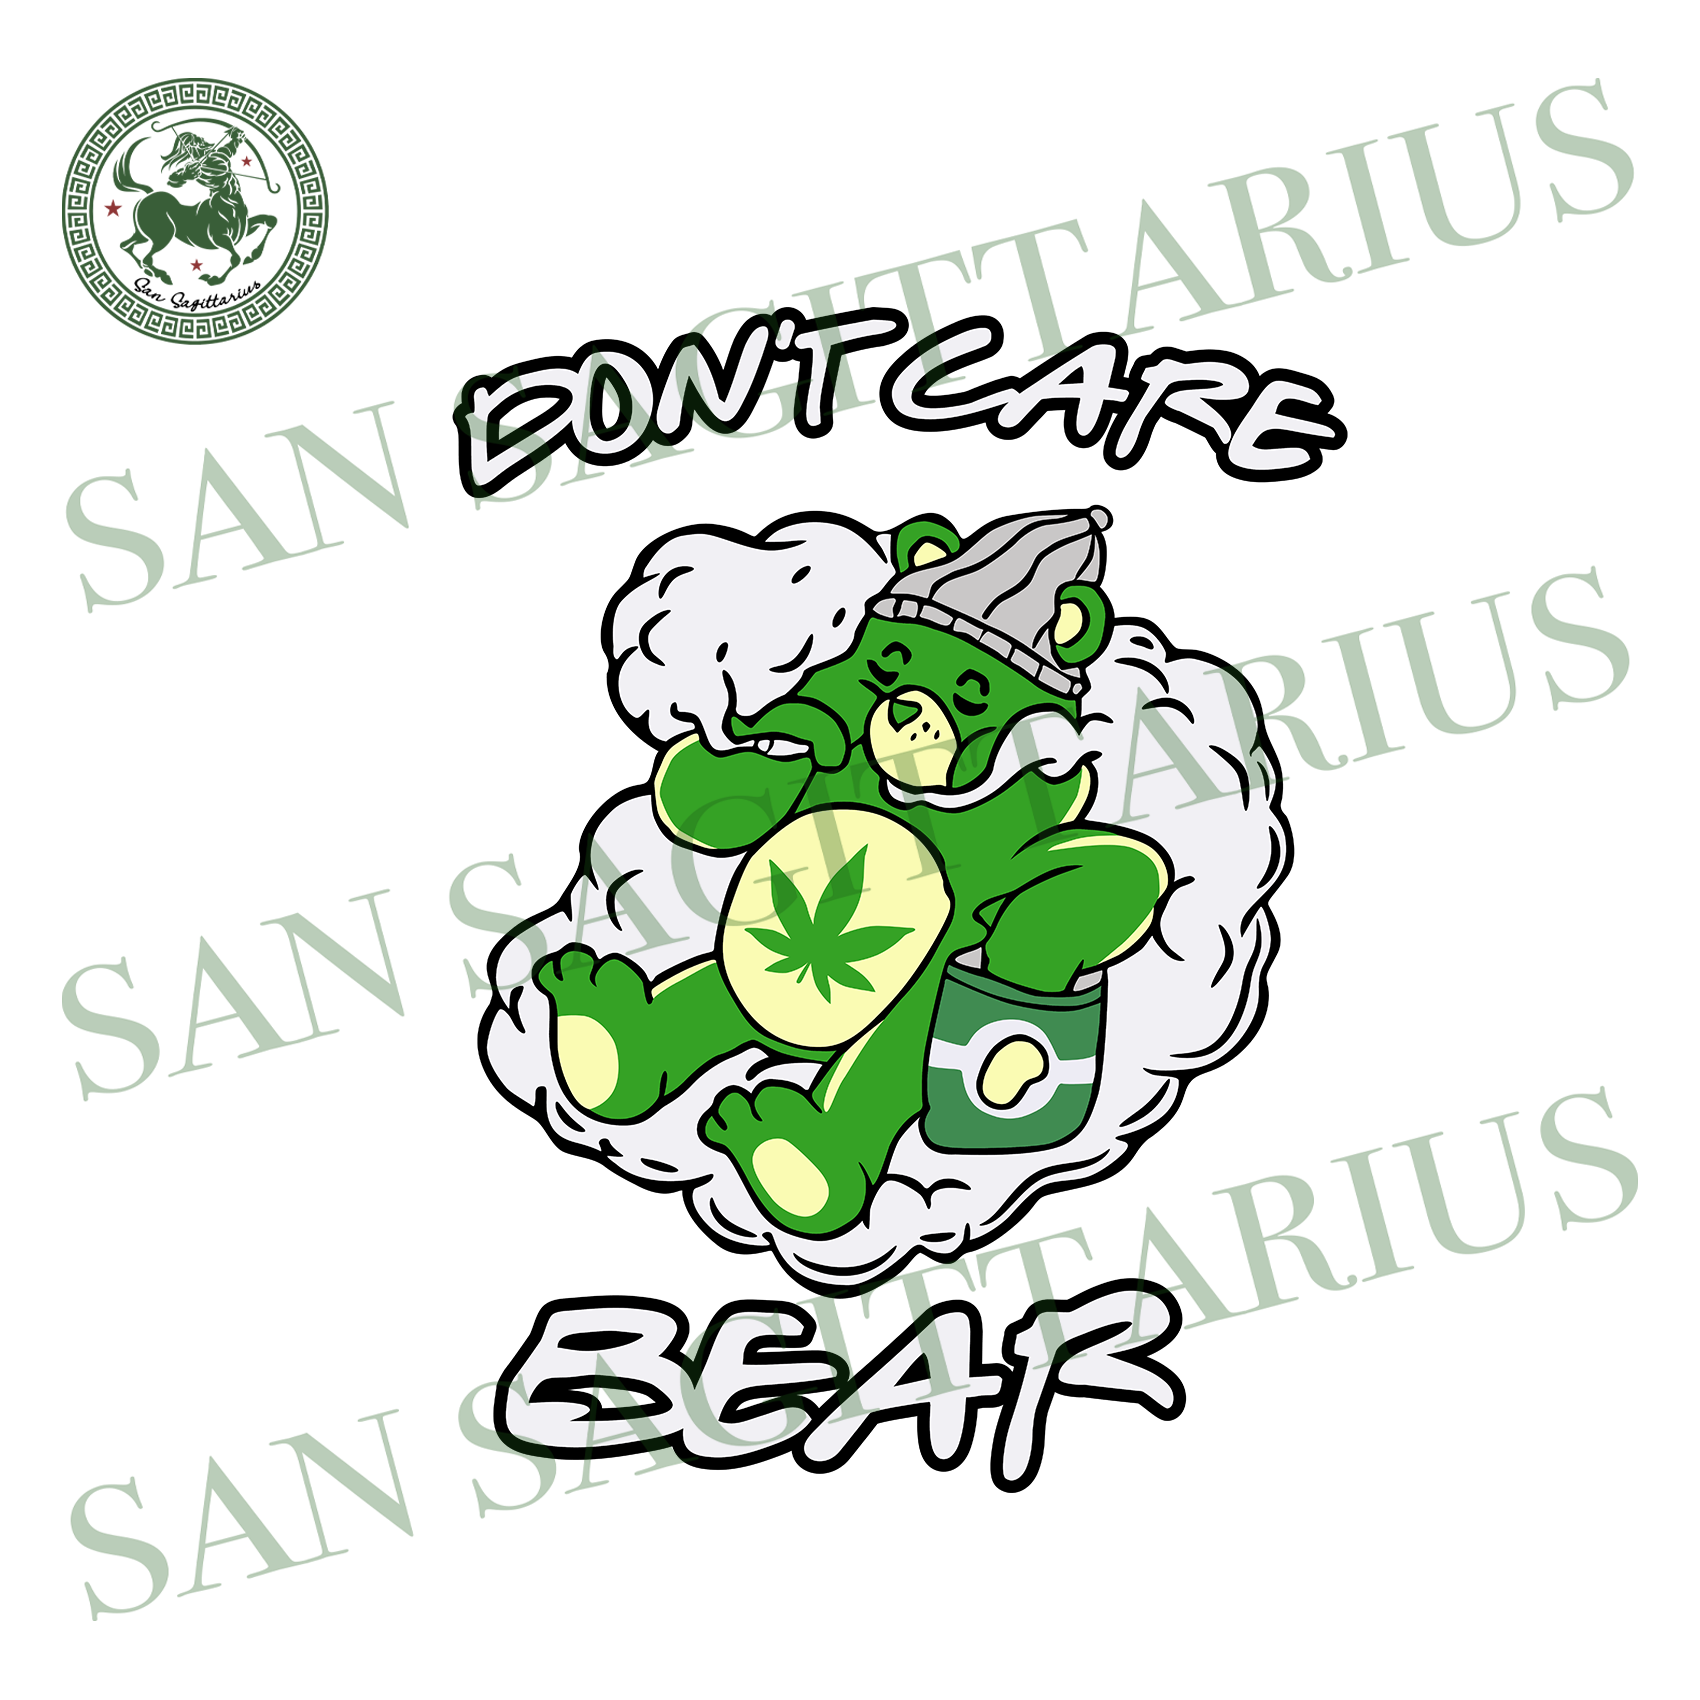 Dont care bear svg,svg,cannabis svg,cannabis lover svg,weed svg,love weed svg,birthday gift svg,svg cricut, silhouette svg files, cricut svg, silhouette svg, svg designs, vinyl svg